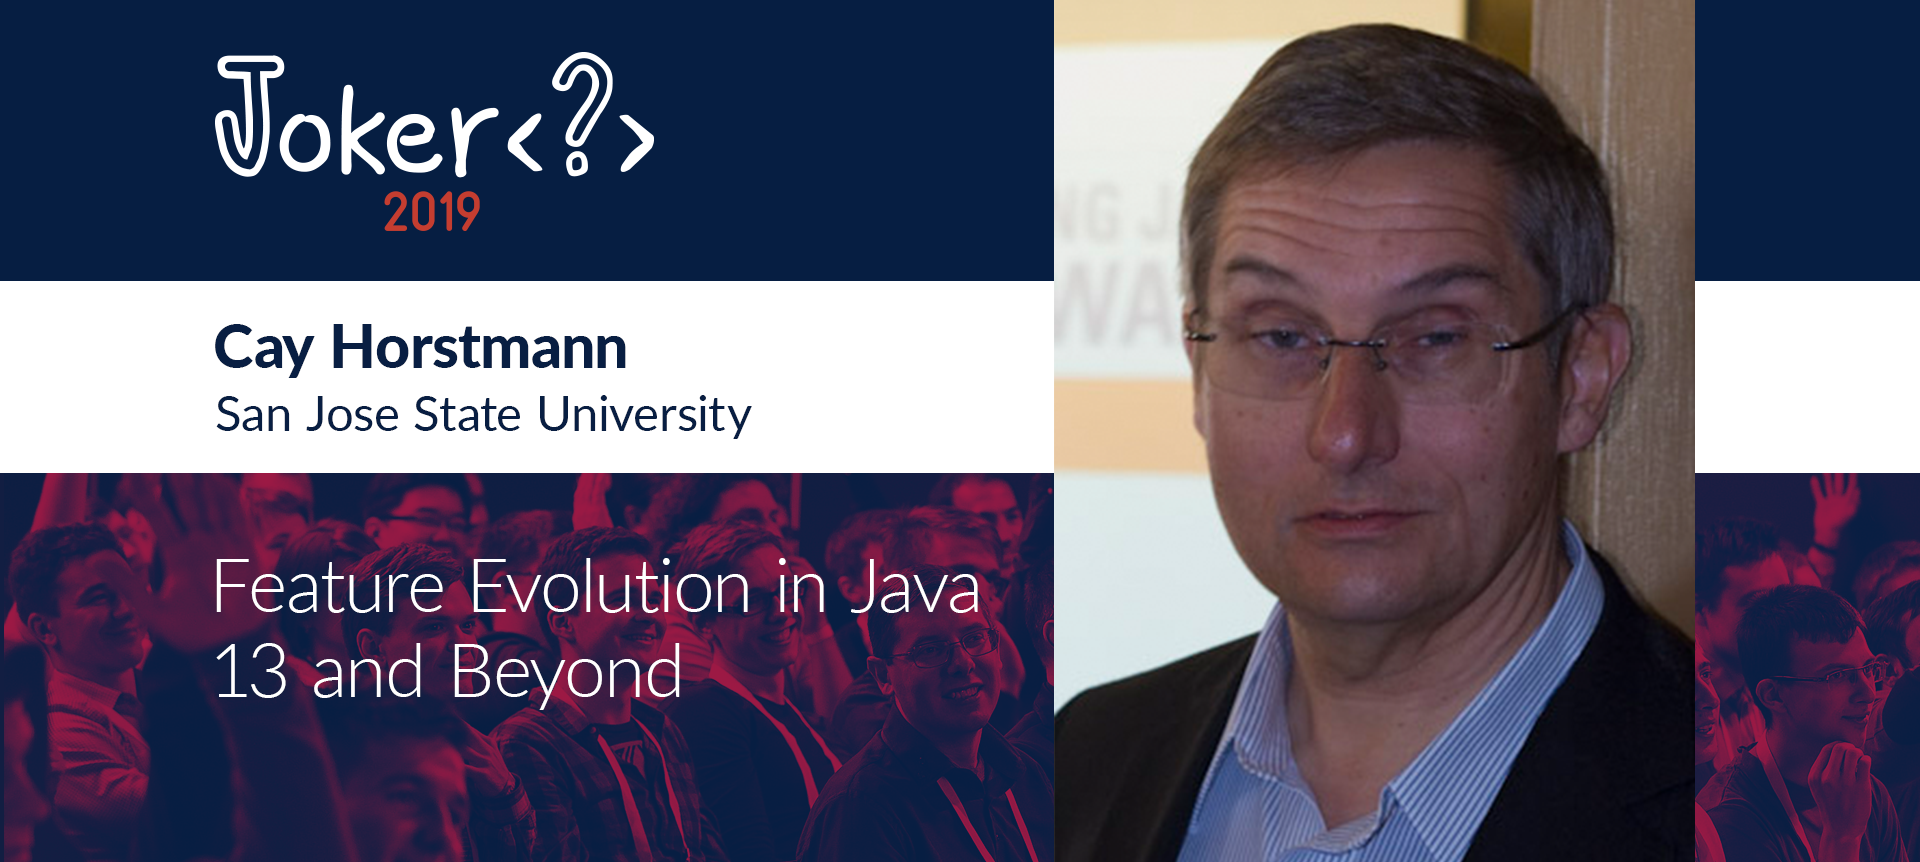 Feature Evolution in Java 13 and Beyond